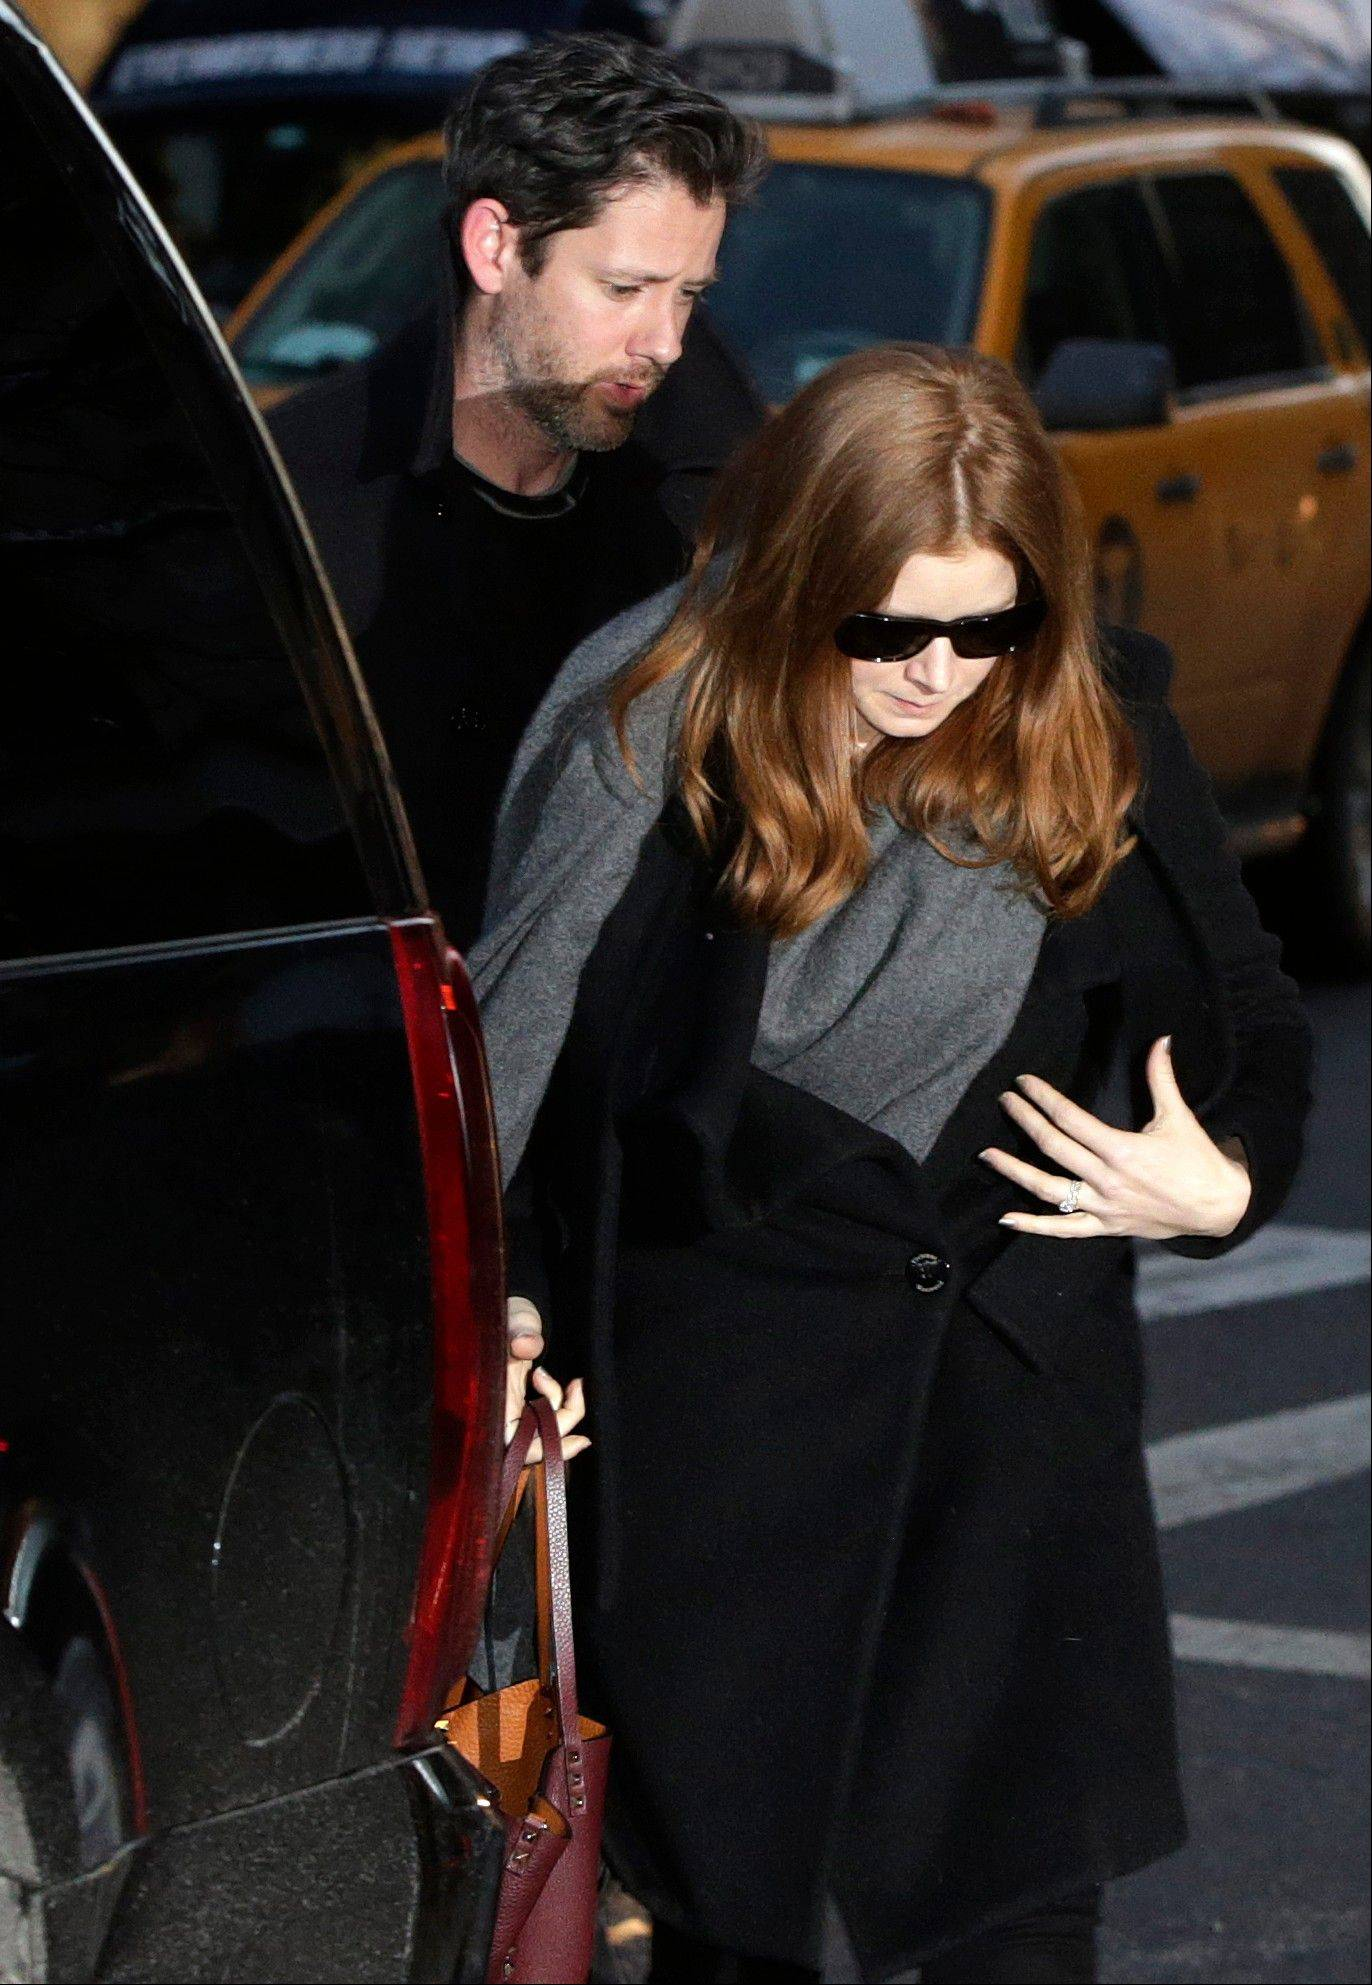 Oscar-nominated actress Amy Adams and her fiance Darren Le Gallo arrive at a wake for actor Philip Seymour Hoffman at the Frank E. Campbell Funeral Home on Manhattan's Upper East Side, Thursday, Feb. 6, 2014, in New York. Hoffman died Sunday of a suspected drug overdose in his New York apartment.